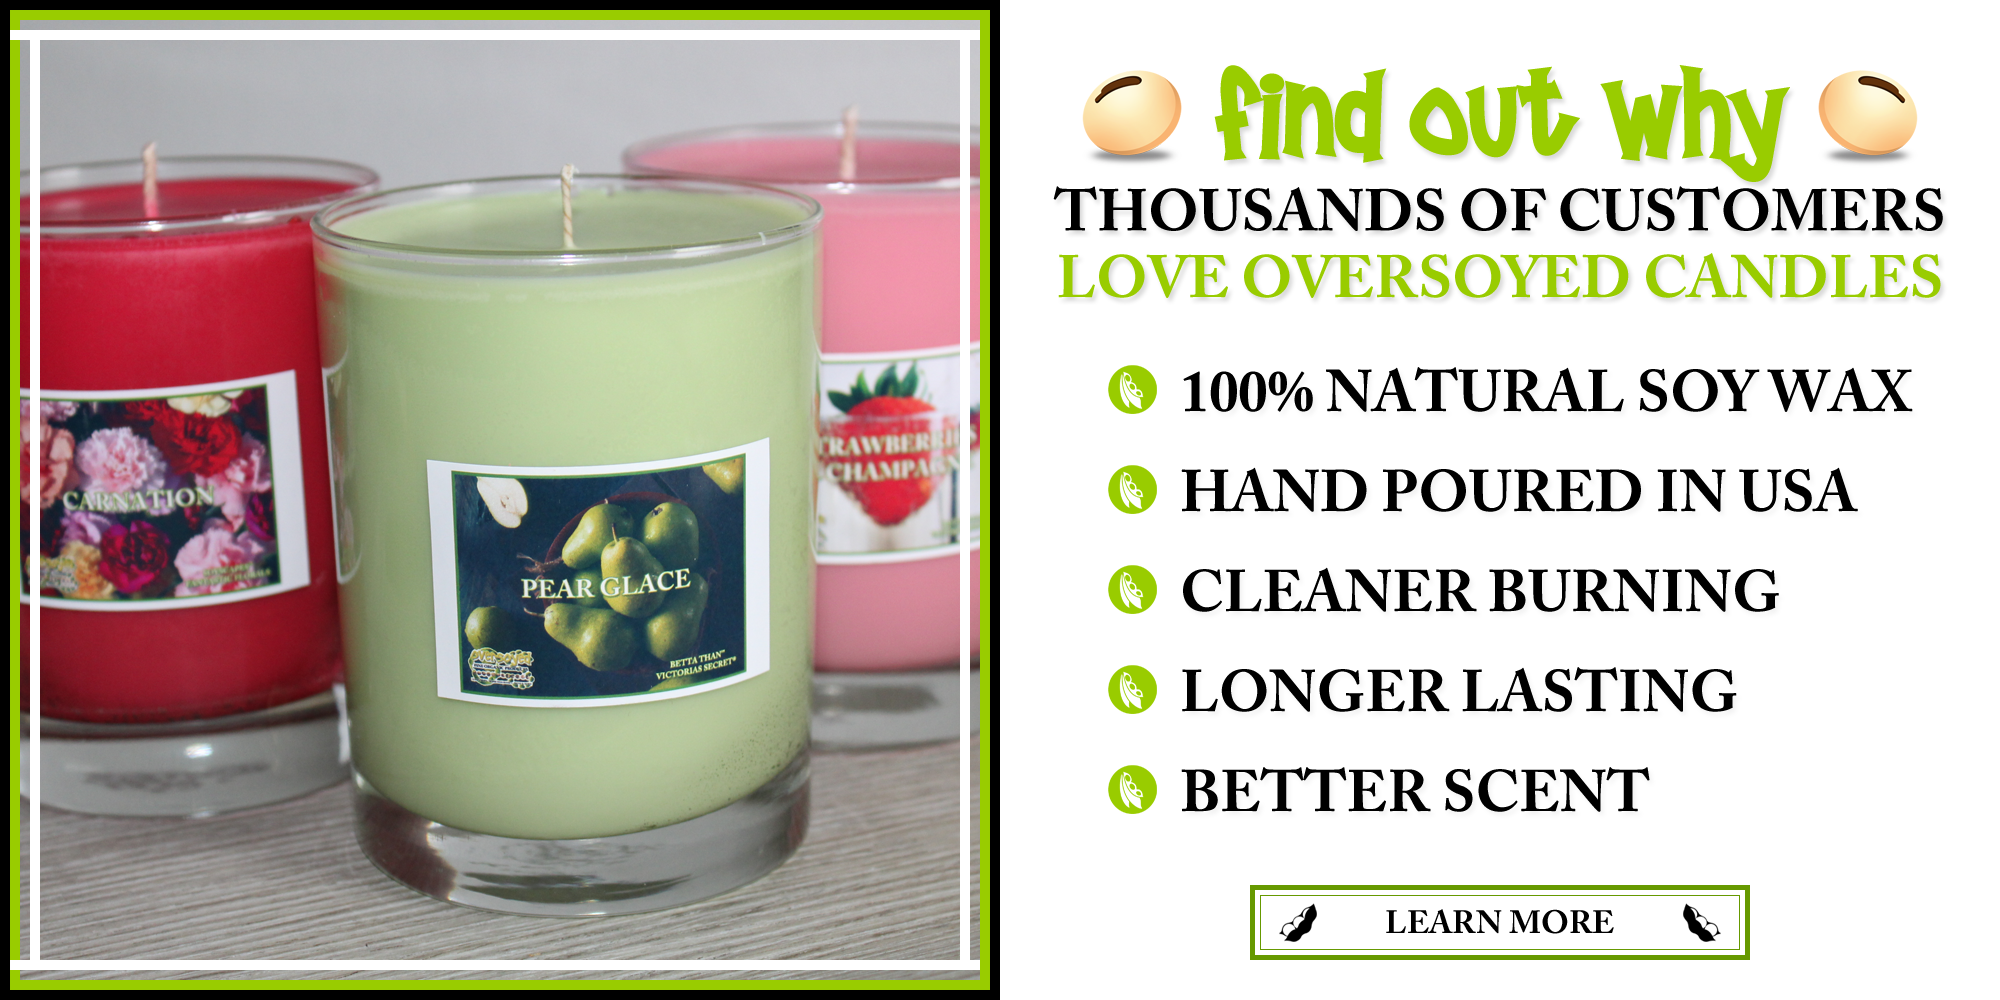 Why Customers Choose OverSoyed Candles?